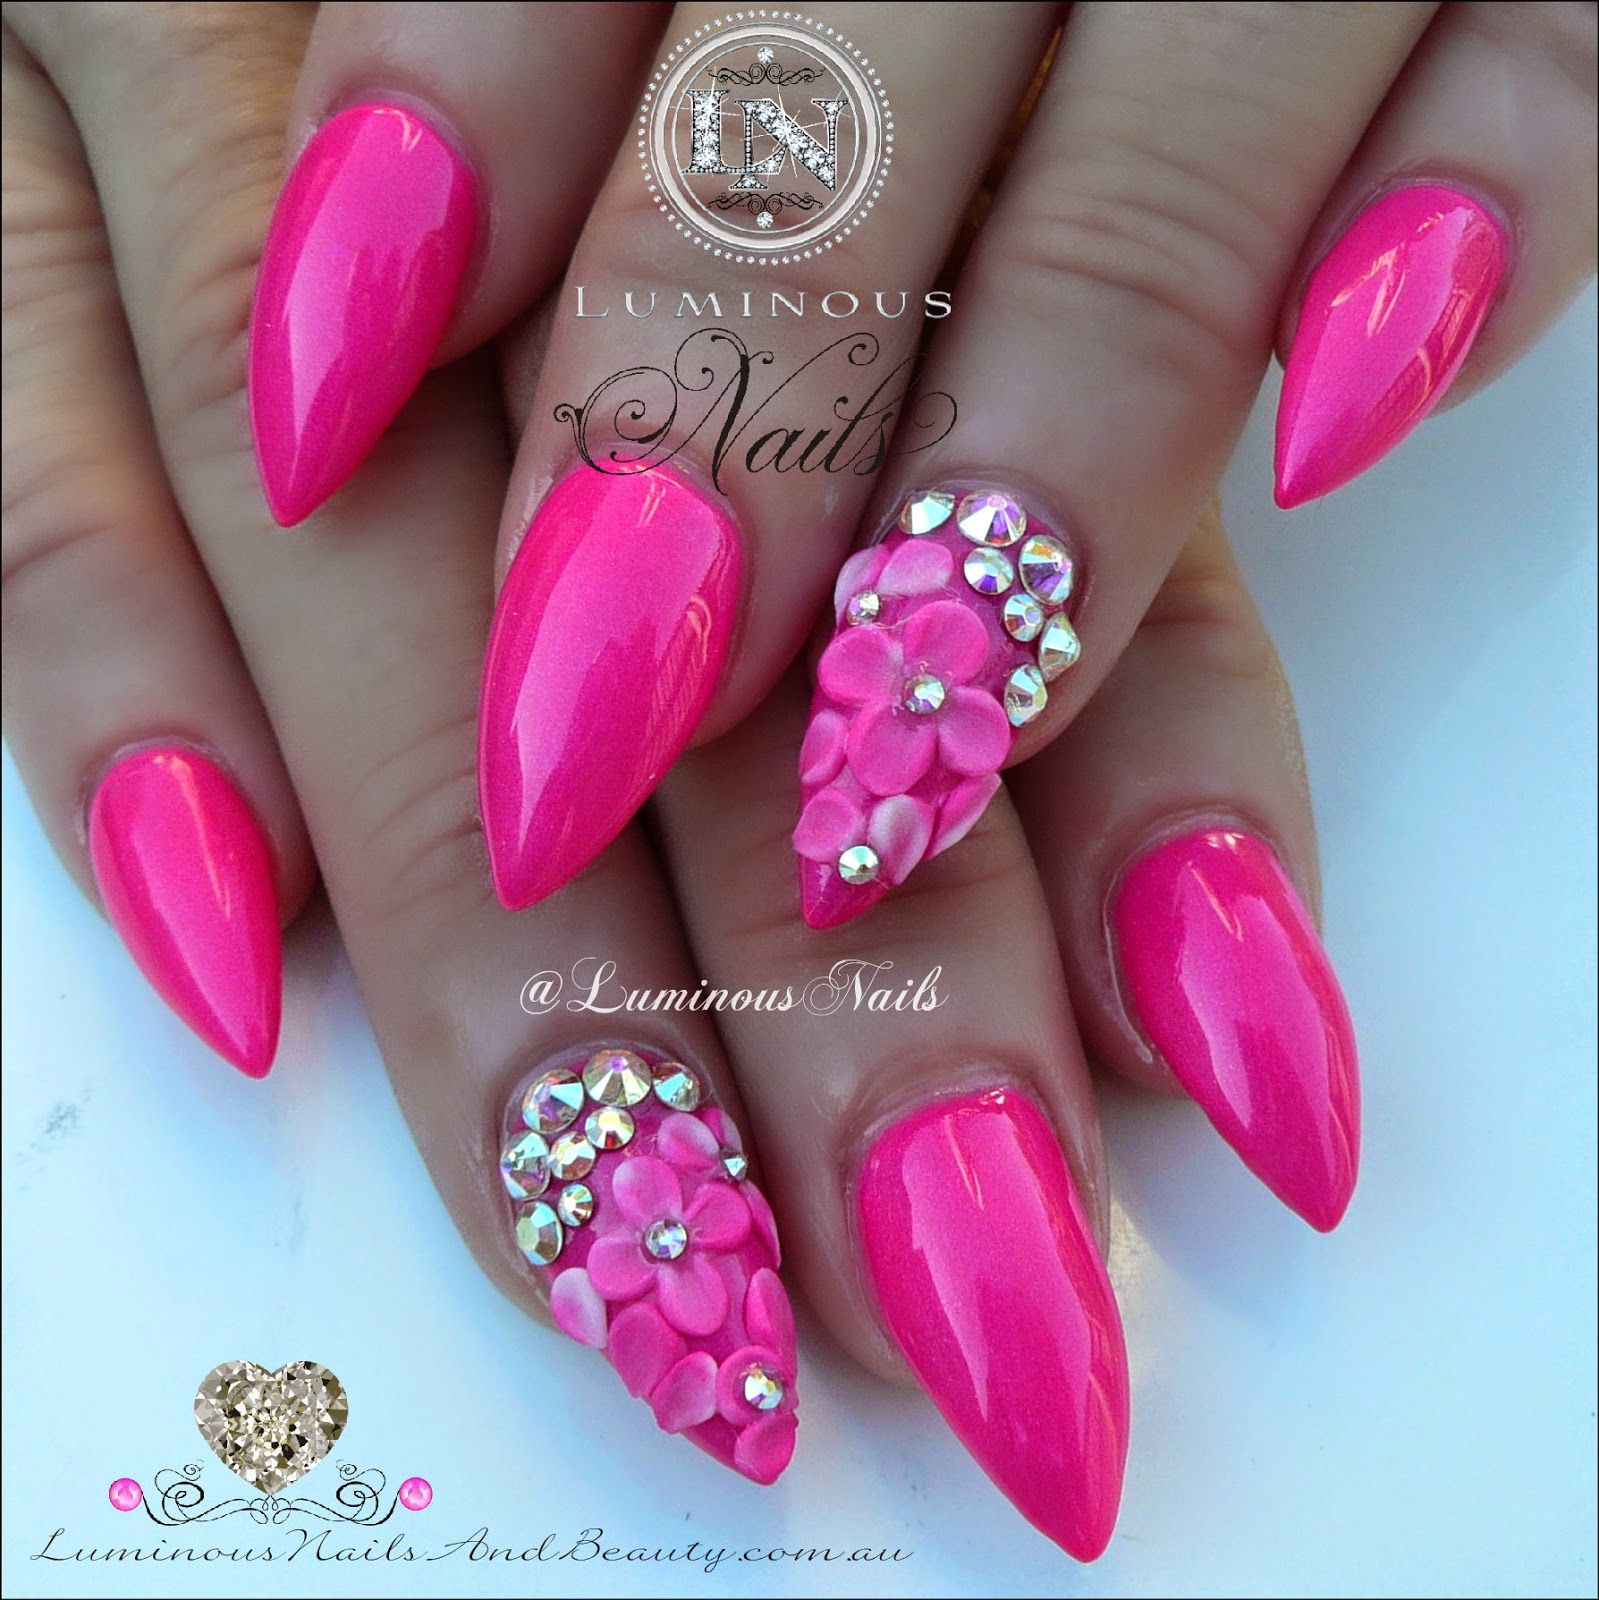 luminous nails: hot pink nails with 3d flowers & swarovski